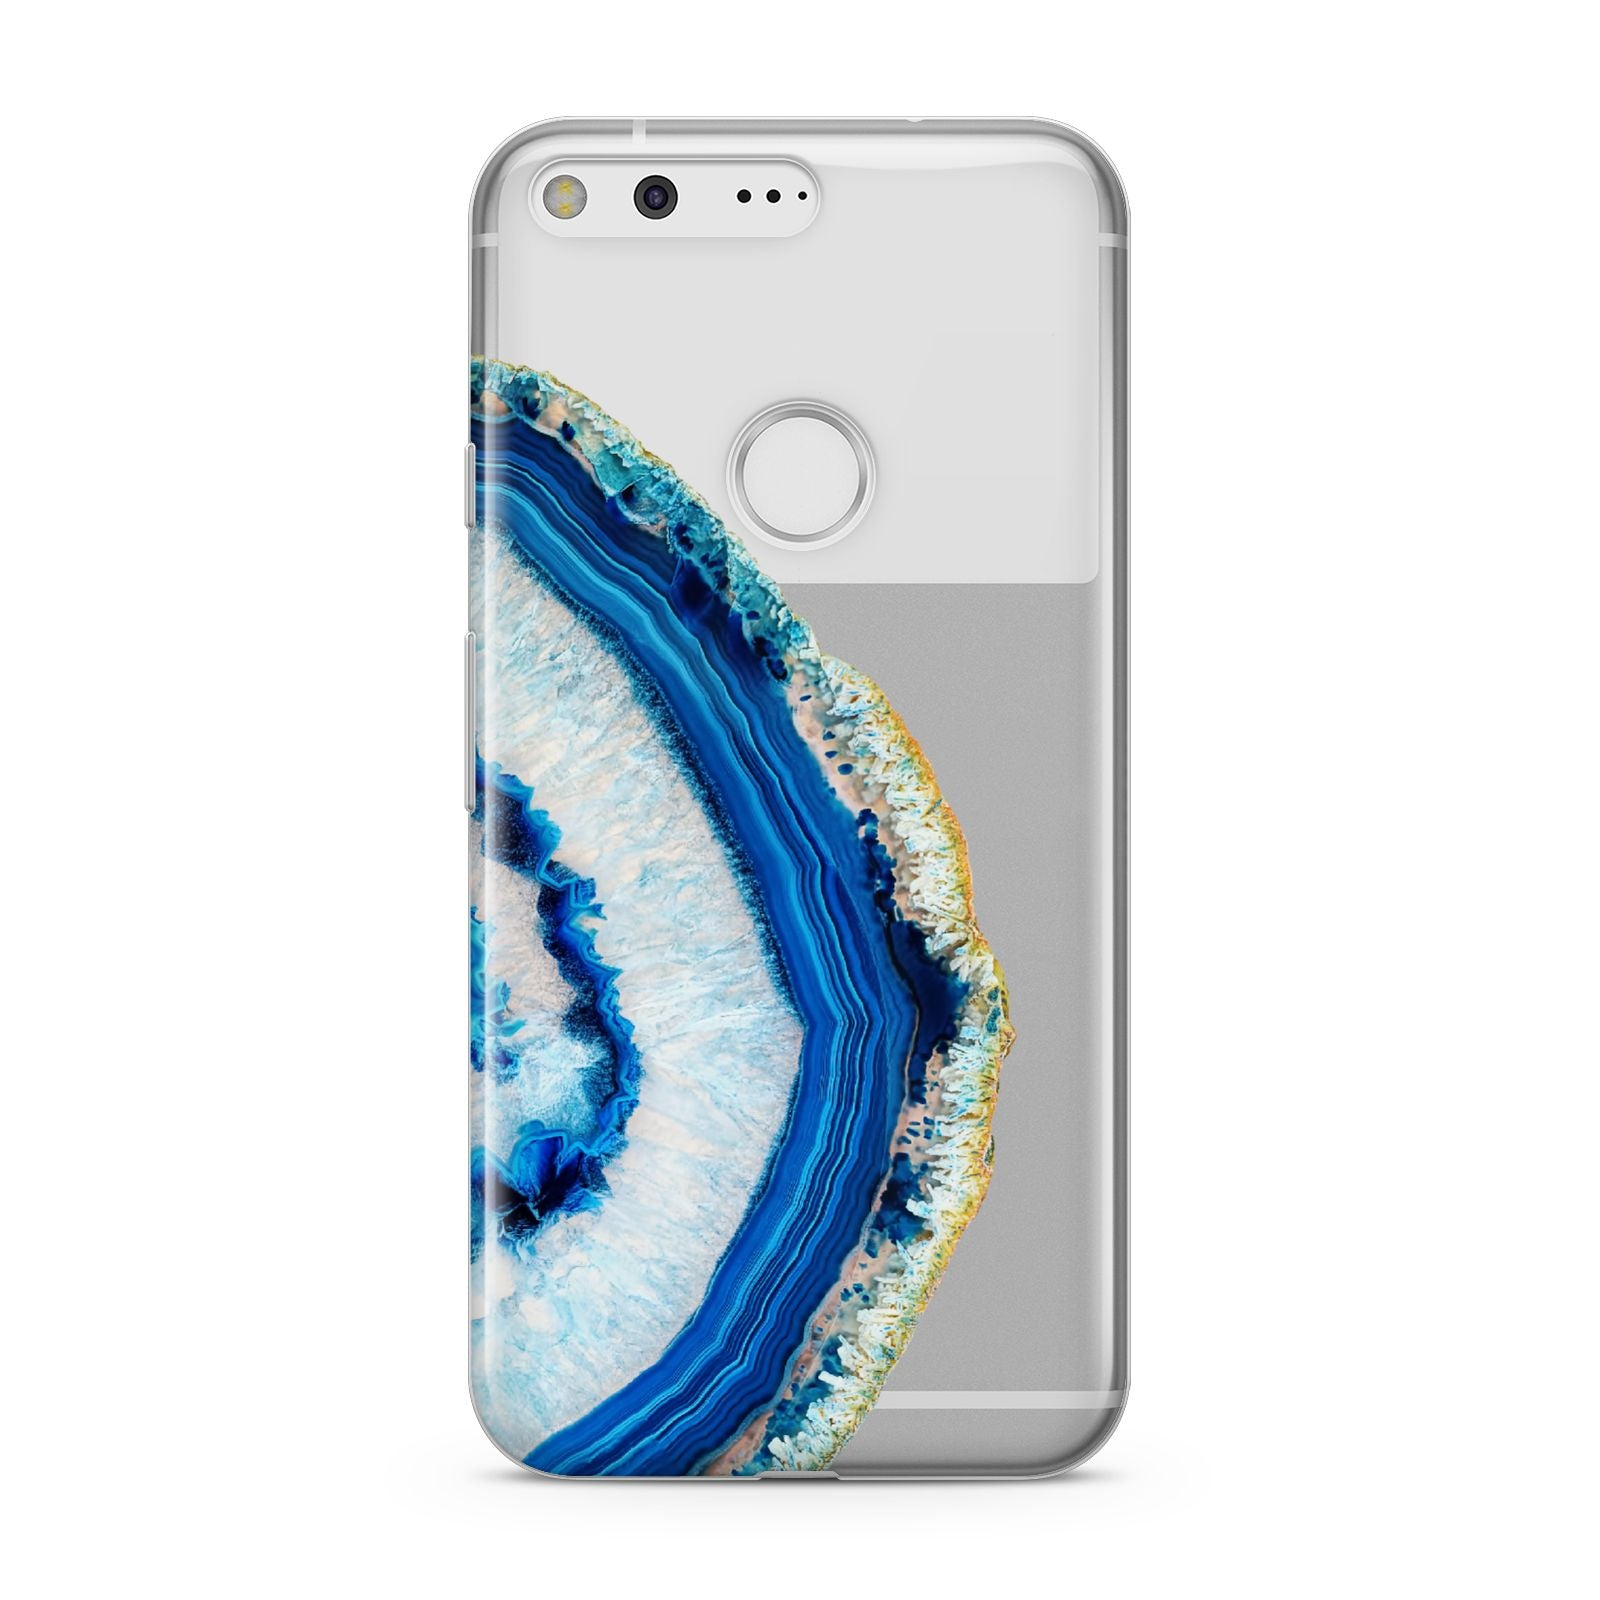 Agate Dark Blue and Turquoise Google Pixel Case